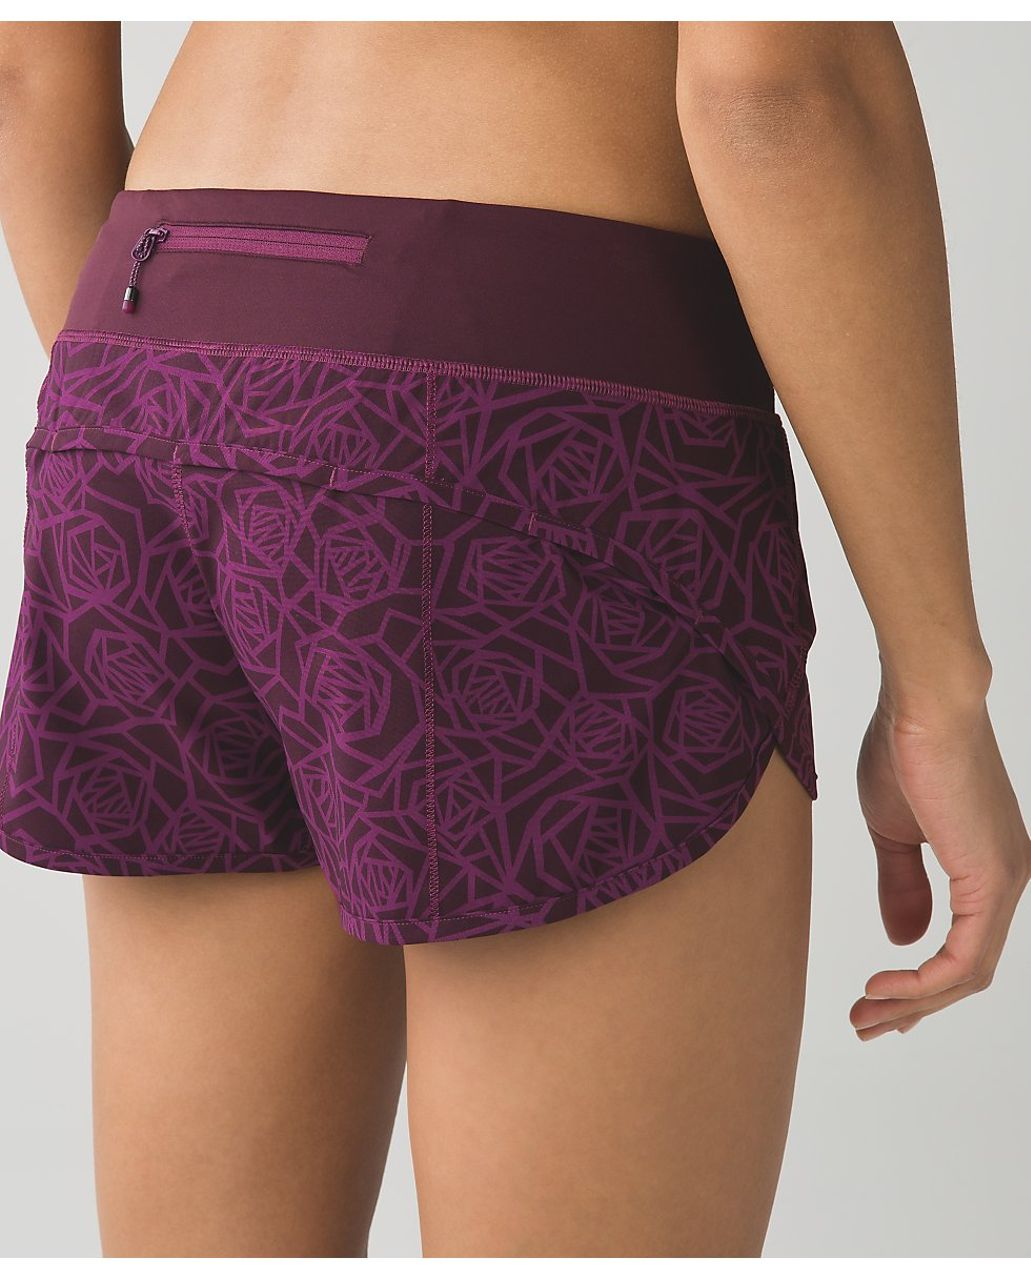 "Lululemon Speed Short *4-way Stretch 2.5"" - Posey Red Grape Bordeaux Drama / Bordeaux Drama"